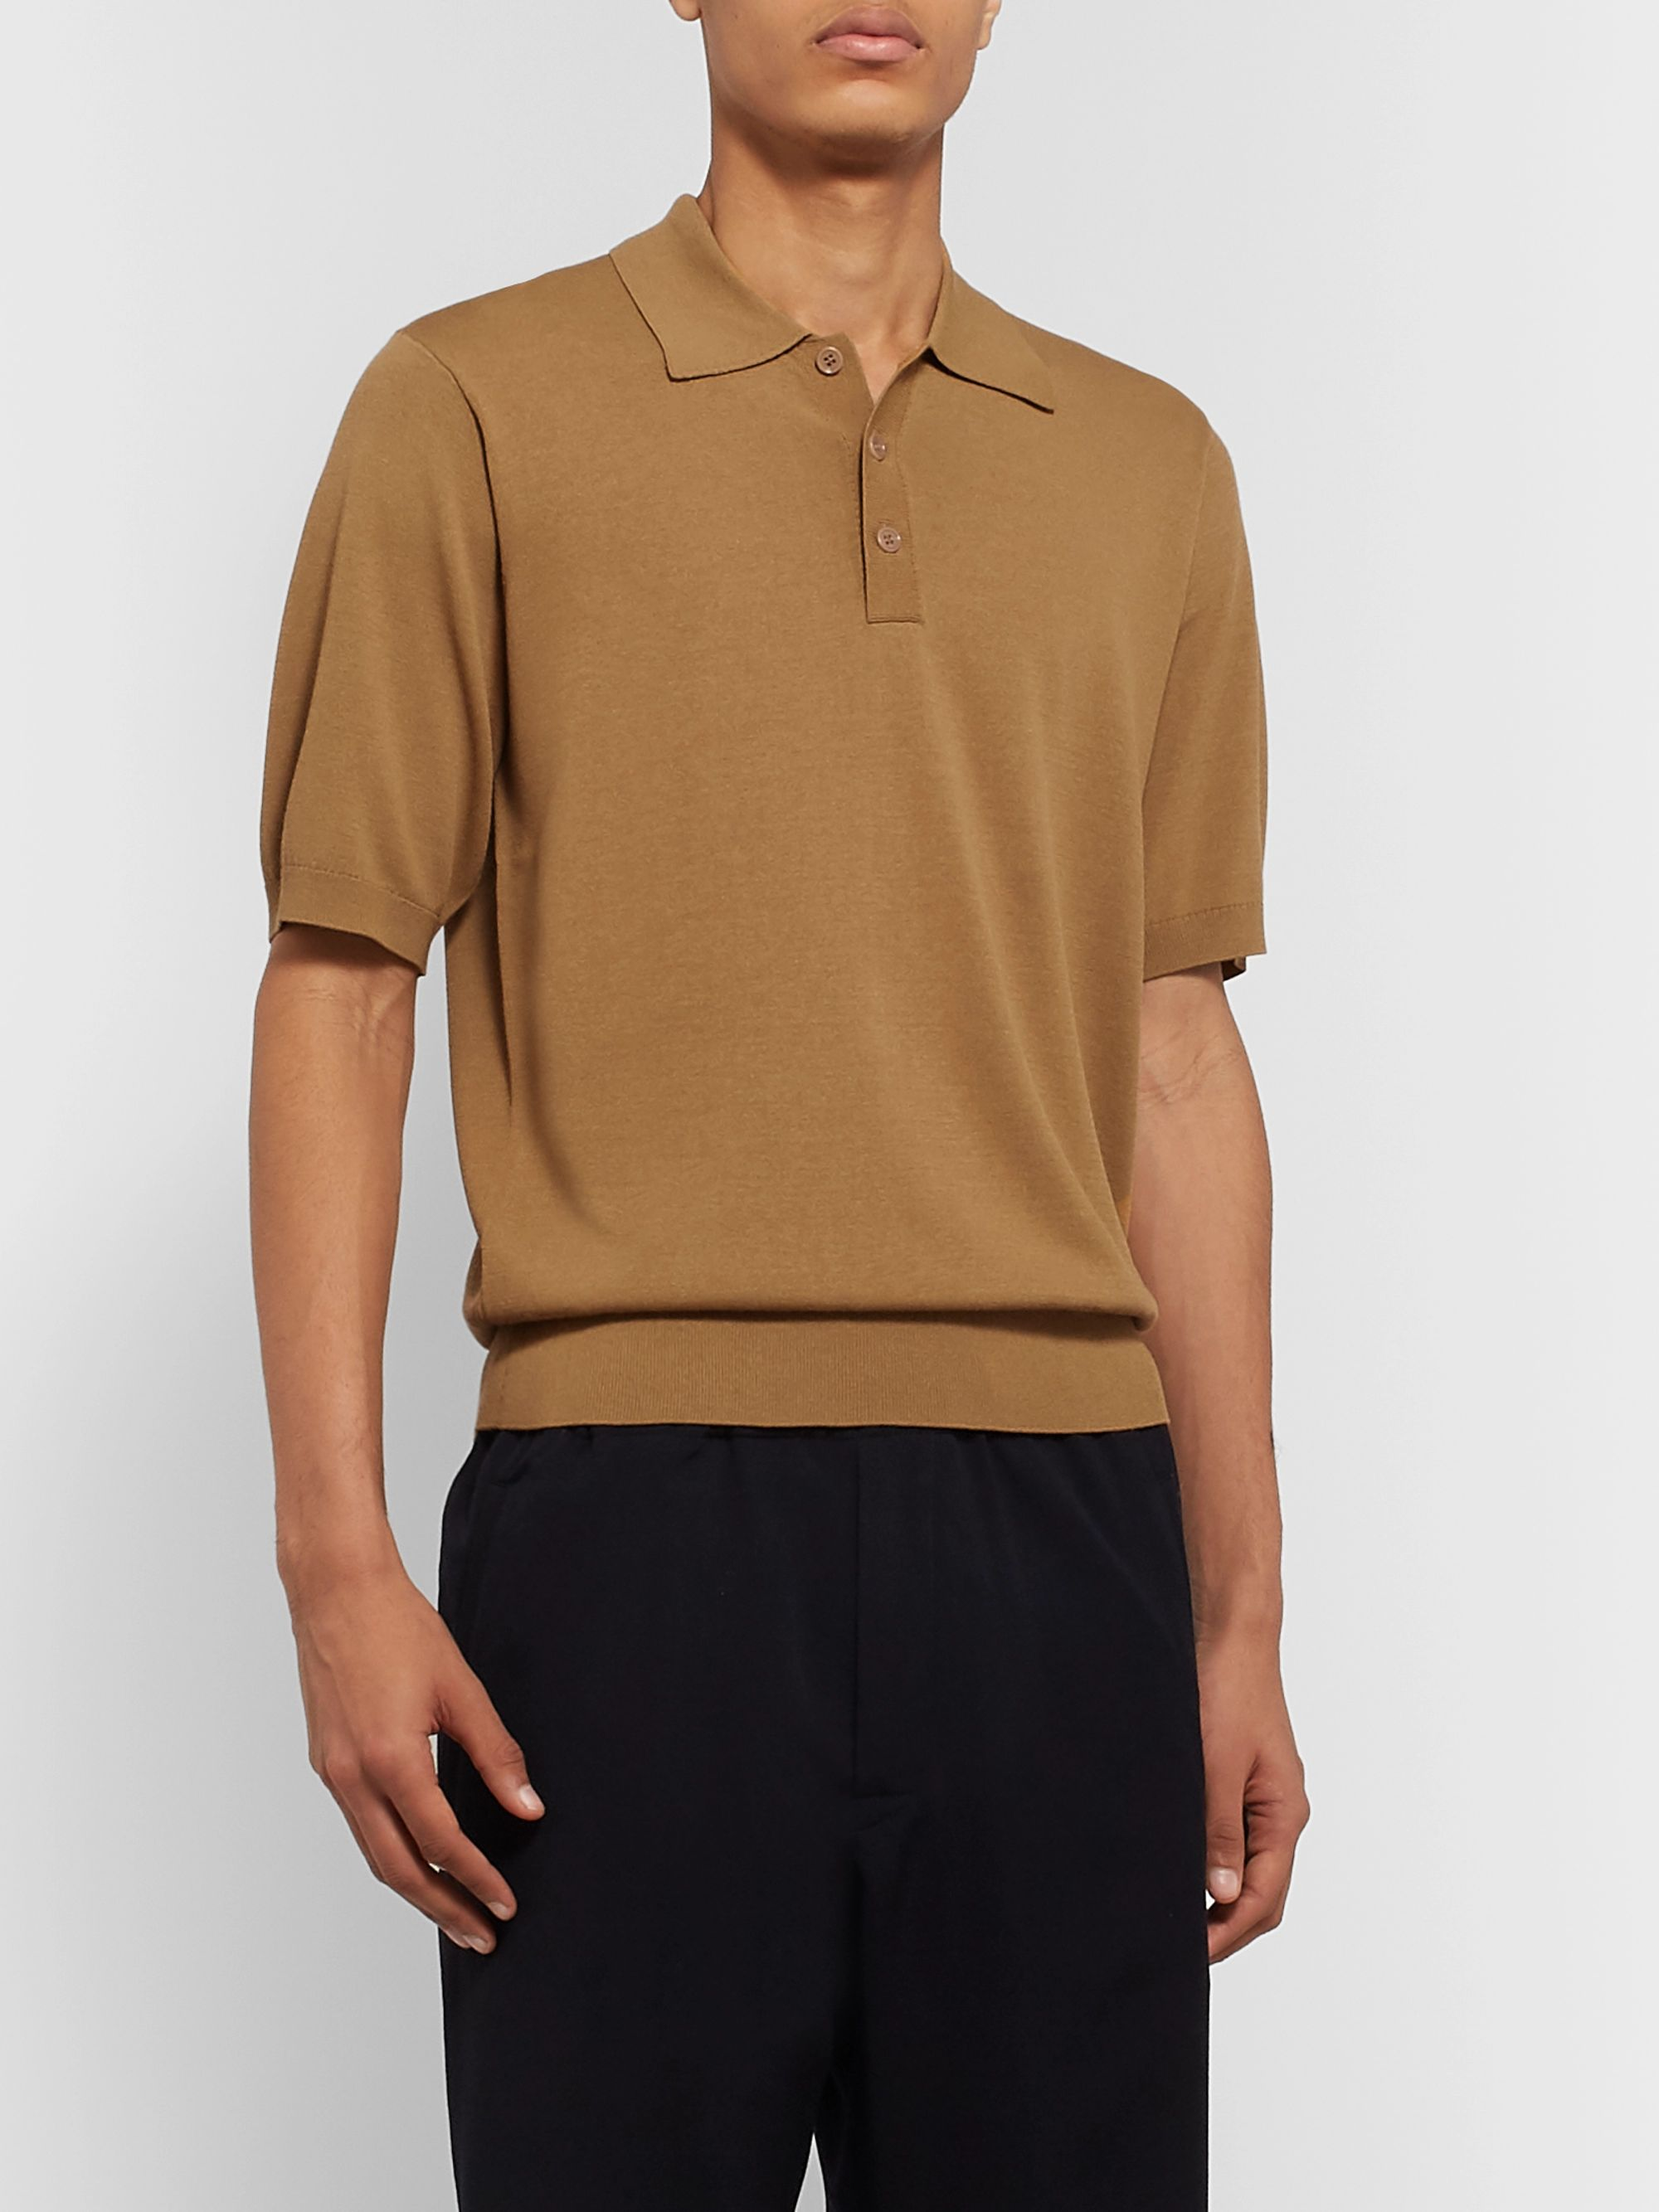 Dries Van Noten Knitted Polo Shirt